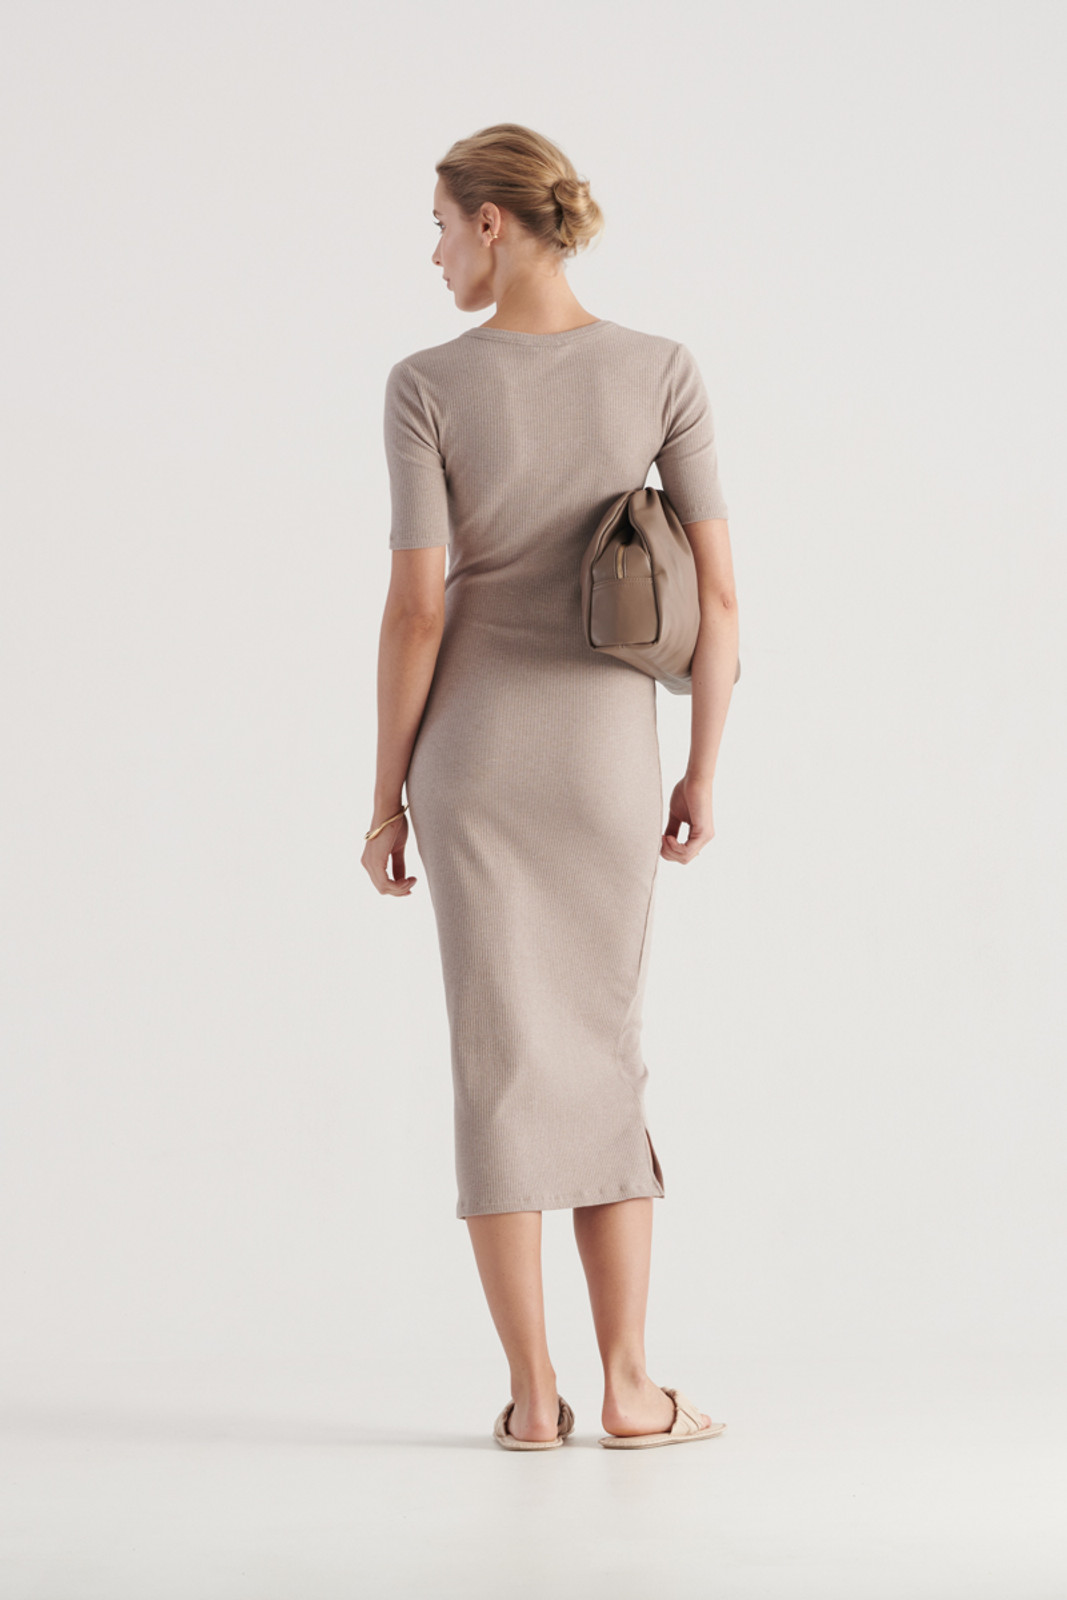 Elka Collective WomensHadley Dress Taupe Marle  4